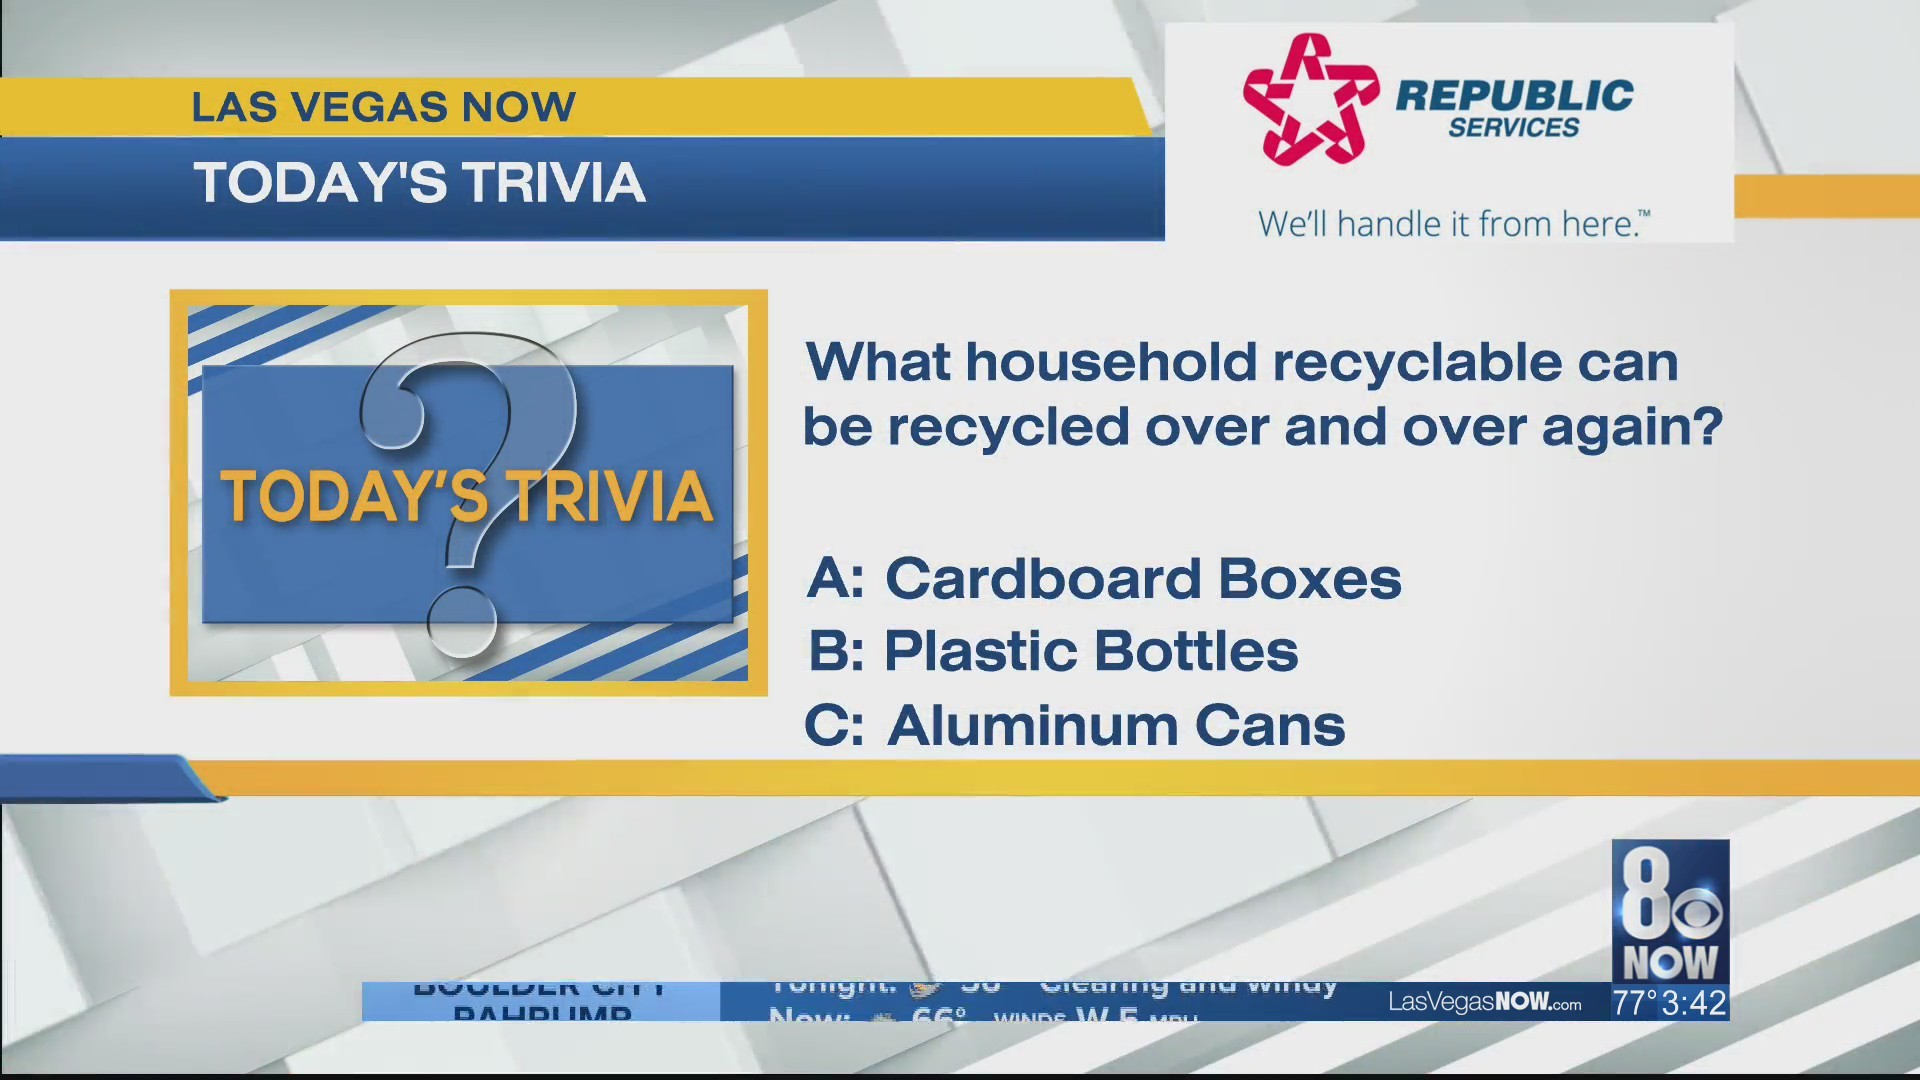 What household item can be recycled over and over again?